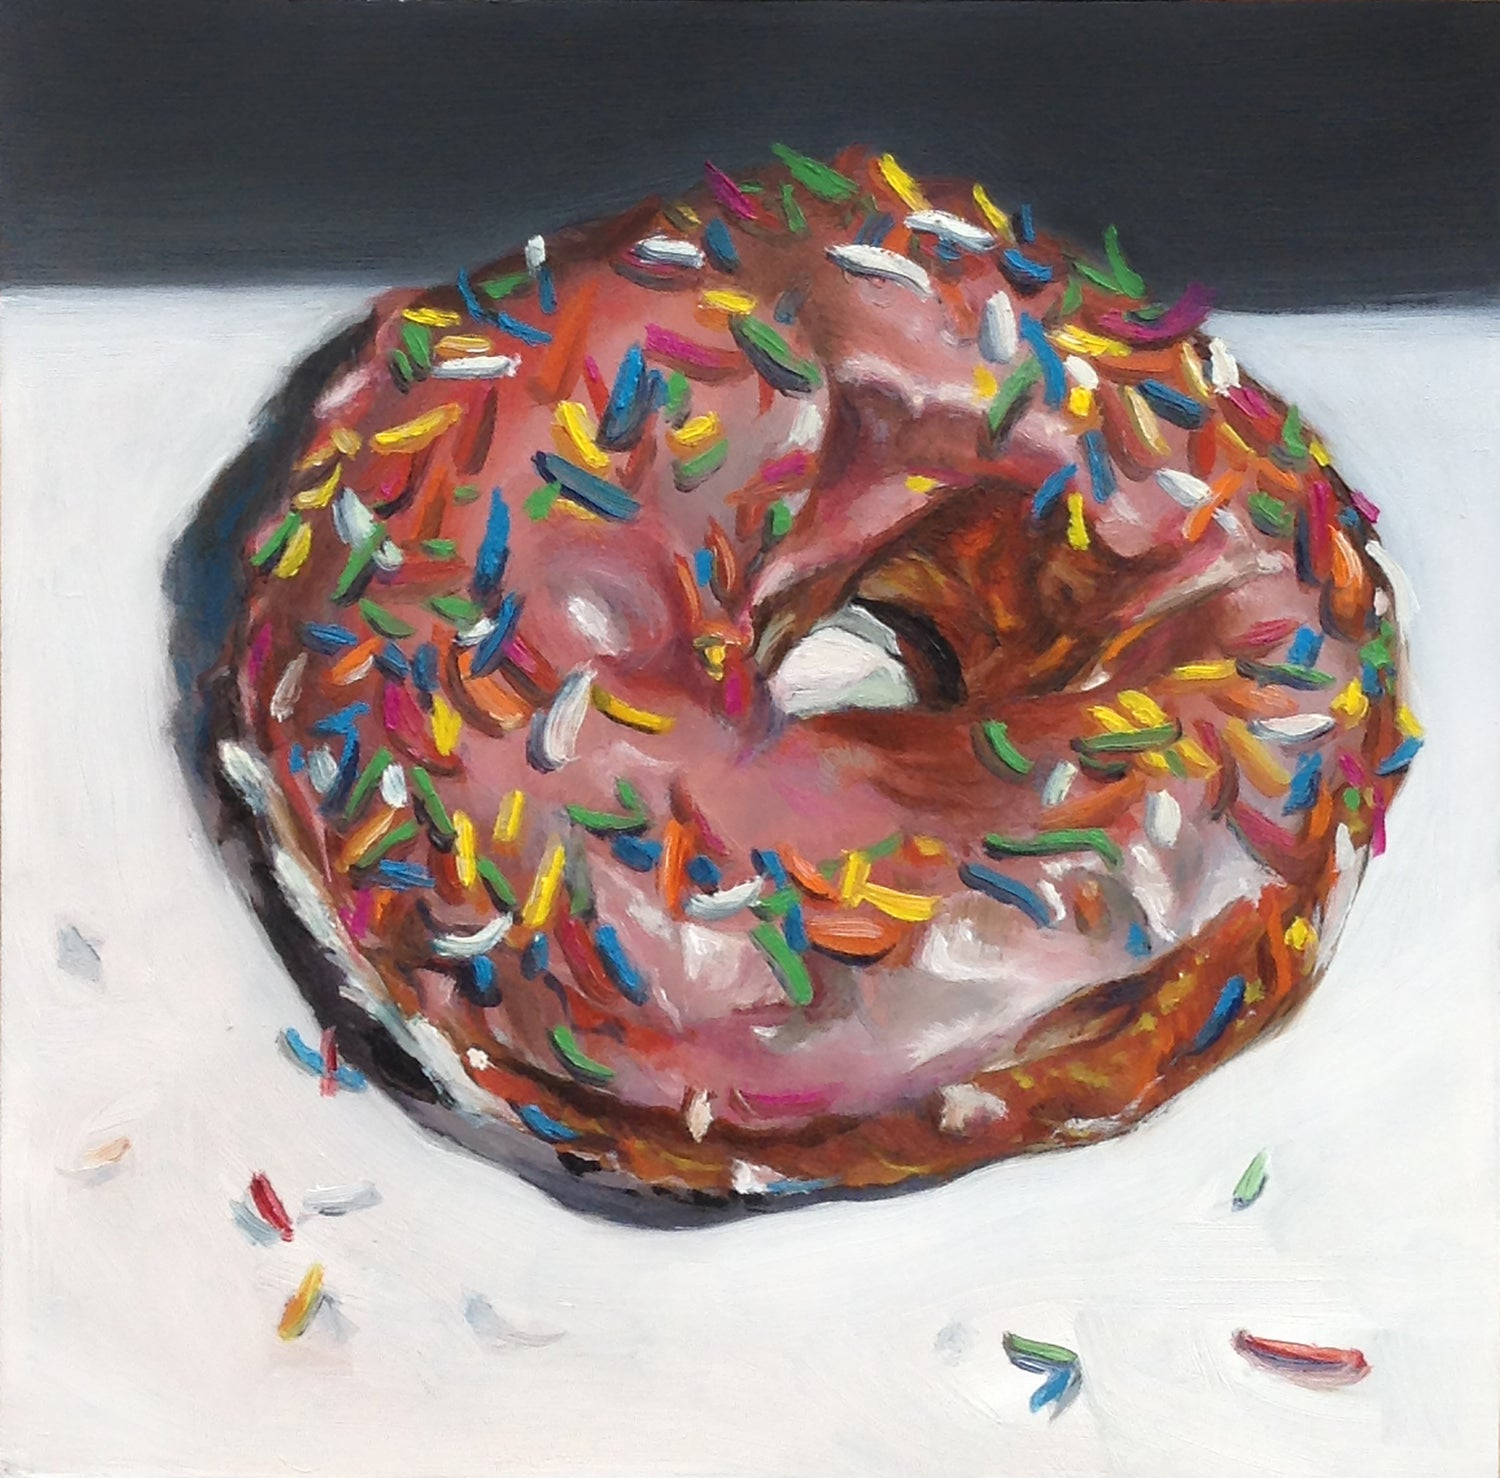 Image of Strawberry Glazed Doughnut with Multi-Color Sprinkles